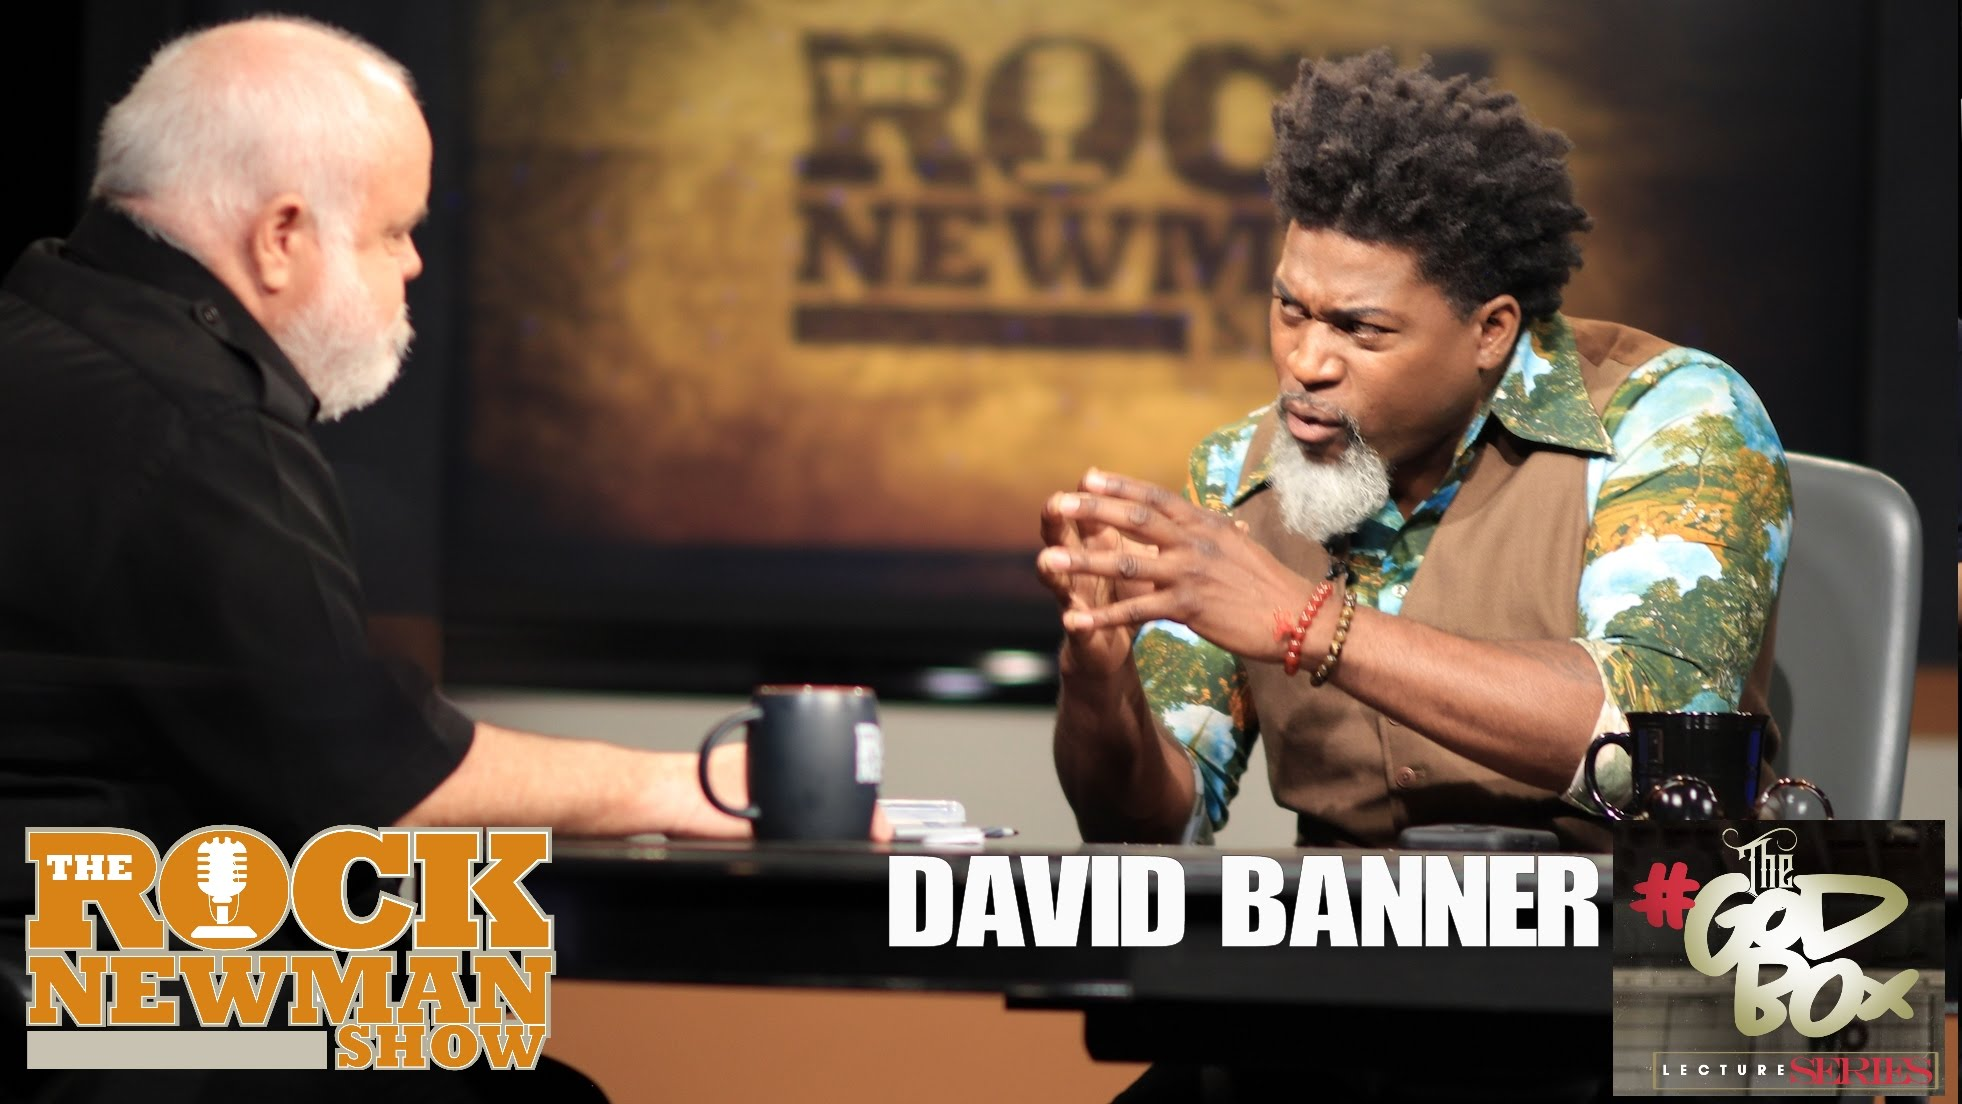 David Banner on The Rock Newman Show